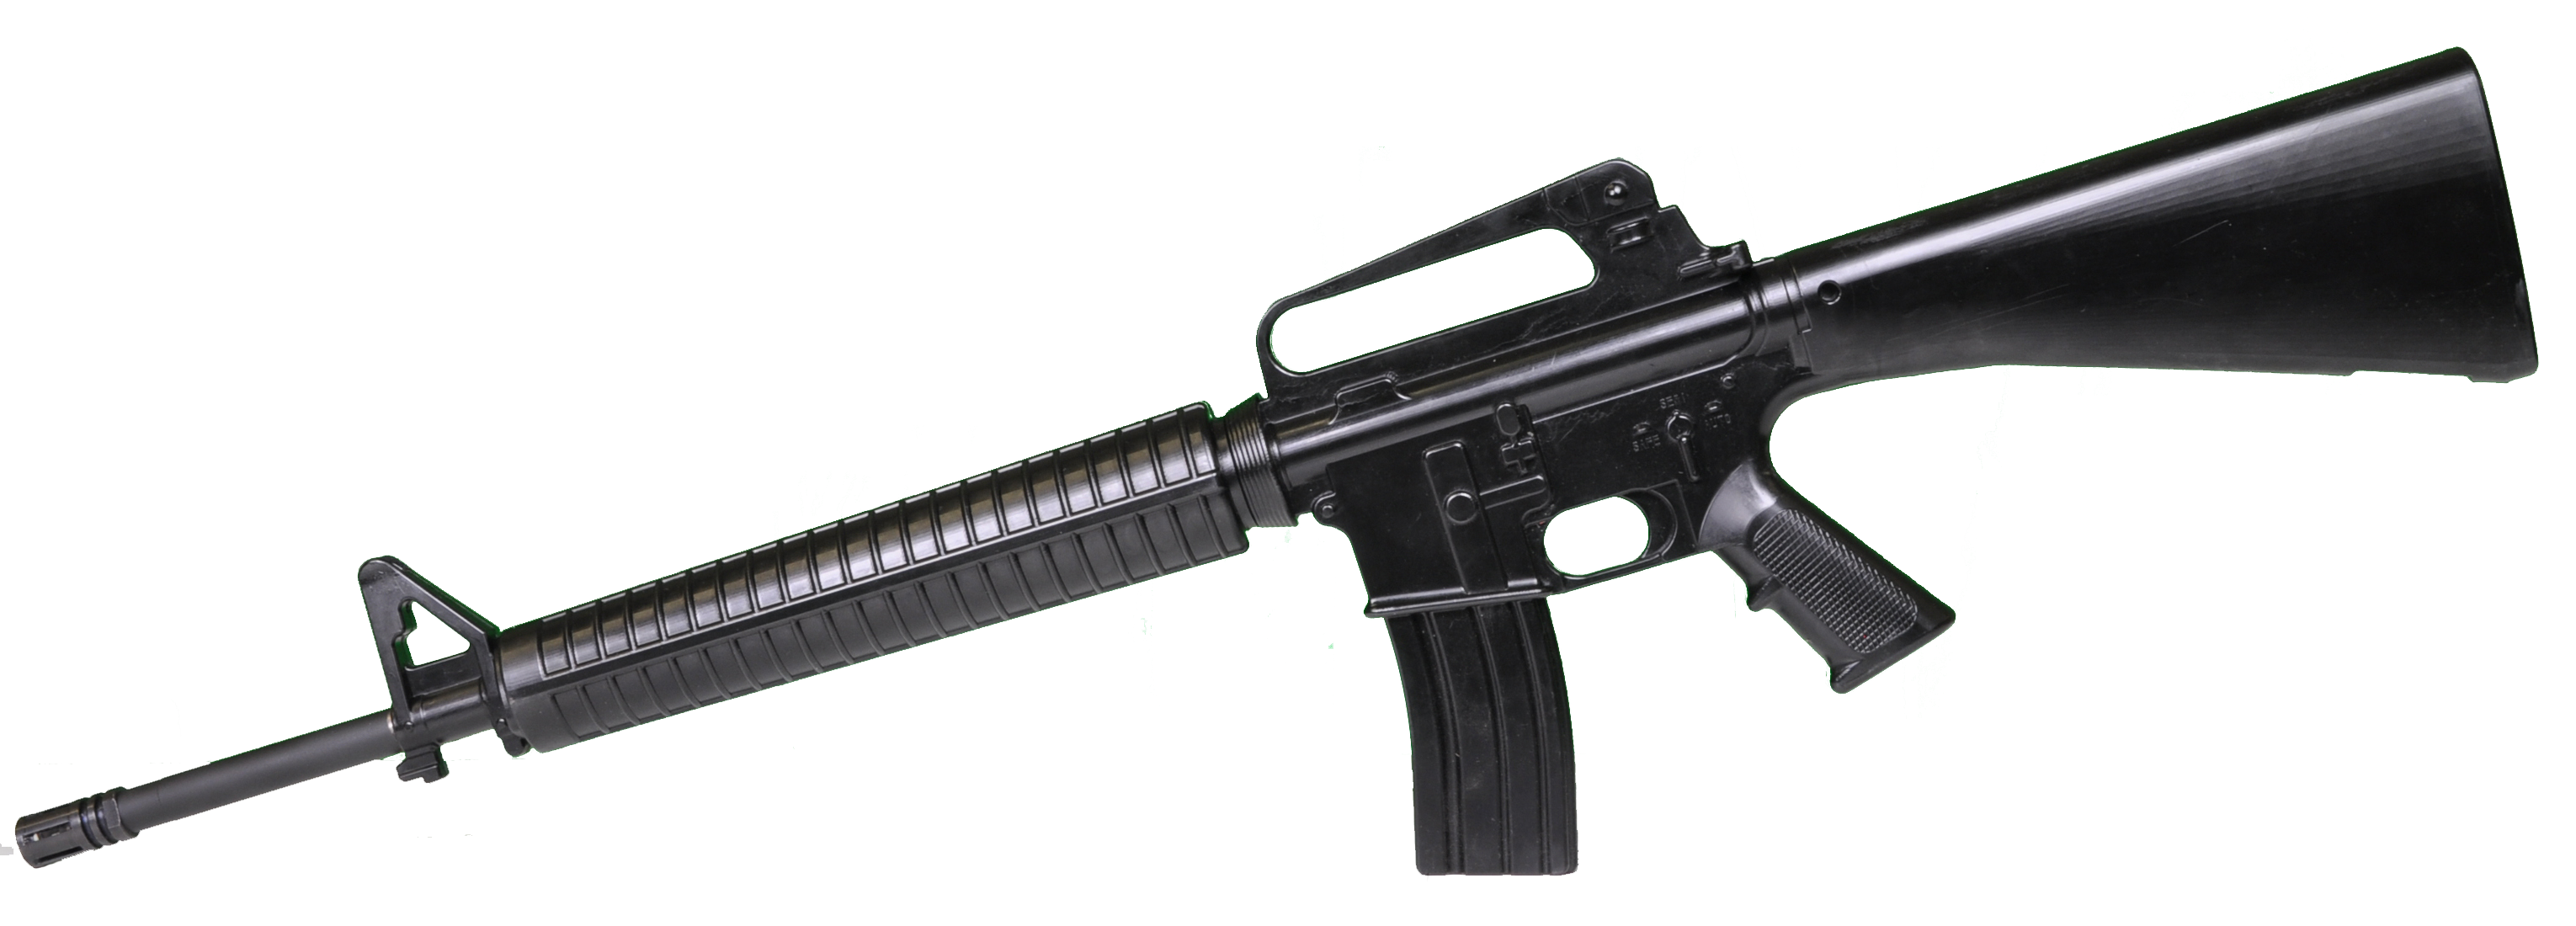 Pubg m16 png. Black assault rifle image